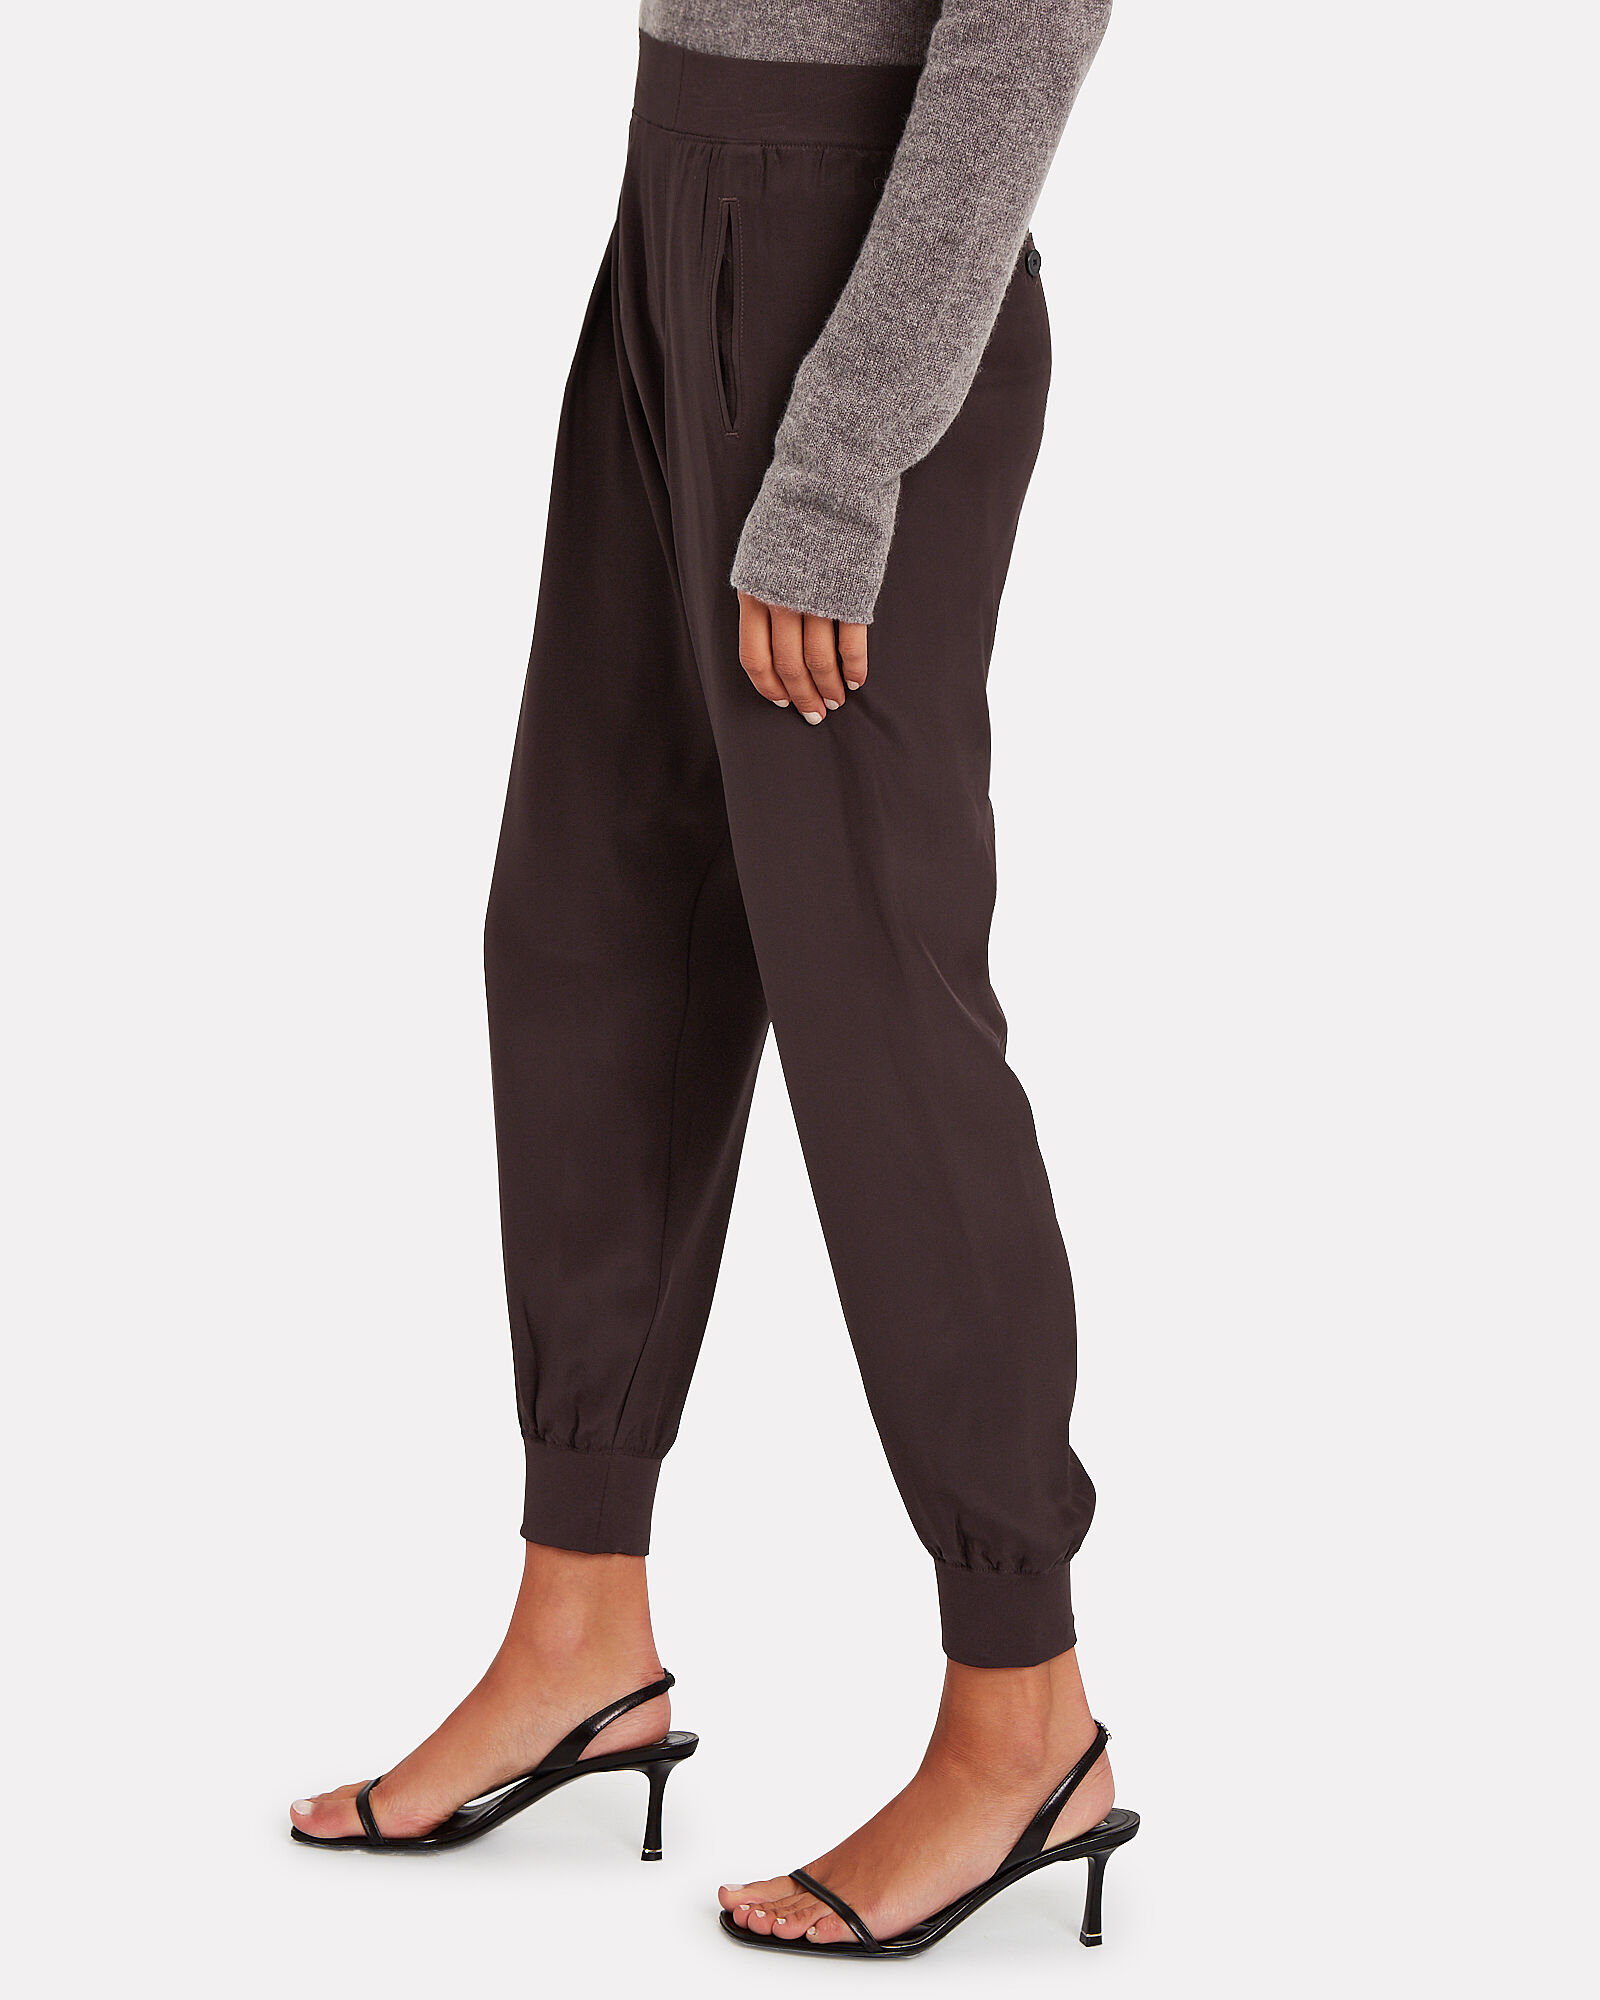 Tailored Silk Sweatpants, DARK CHOCOLATE, hi-res